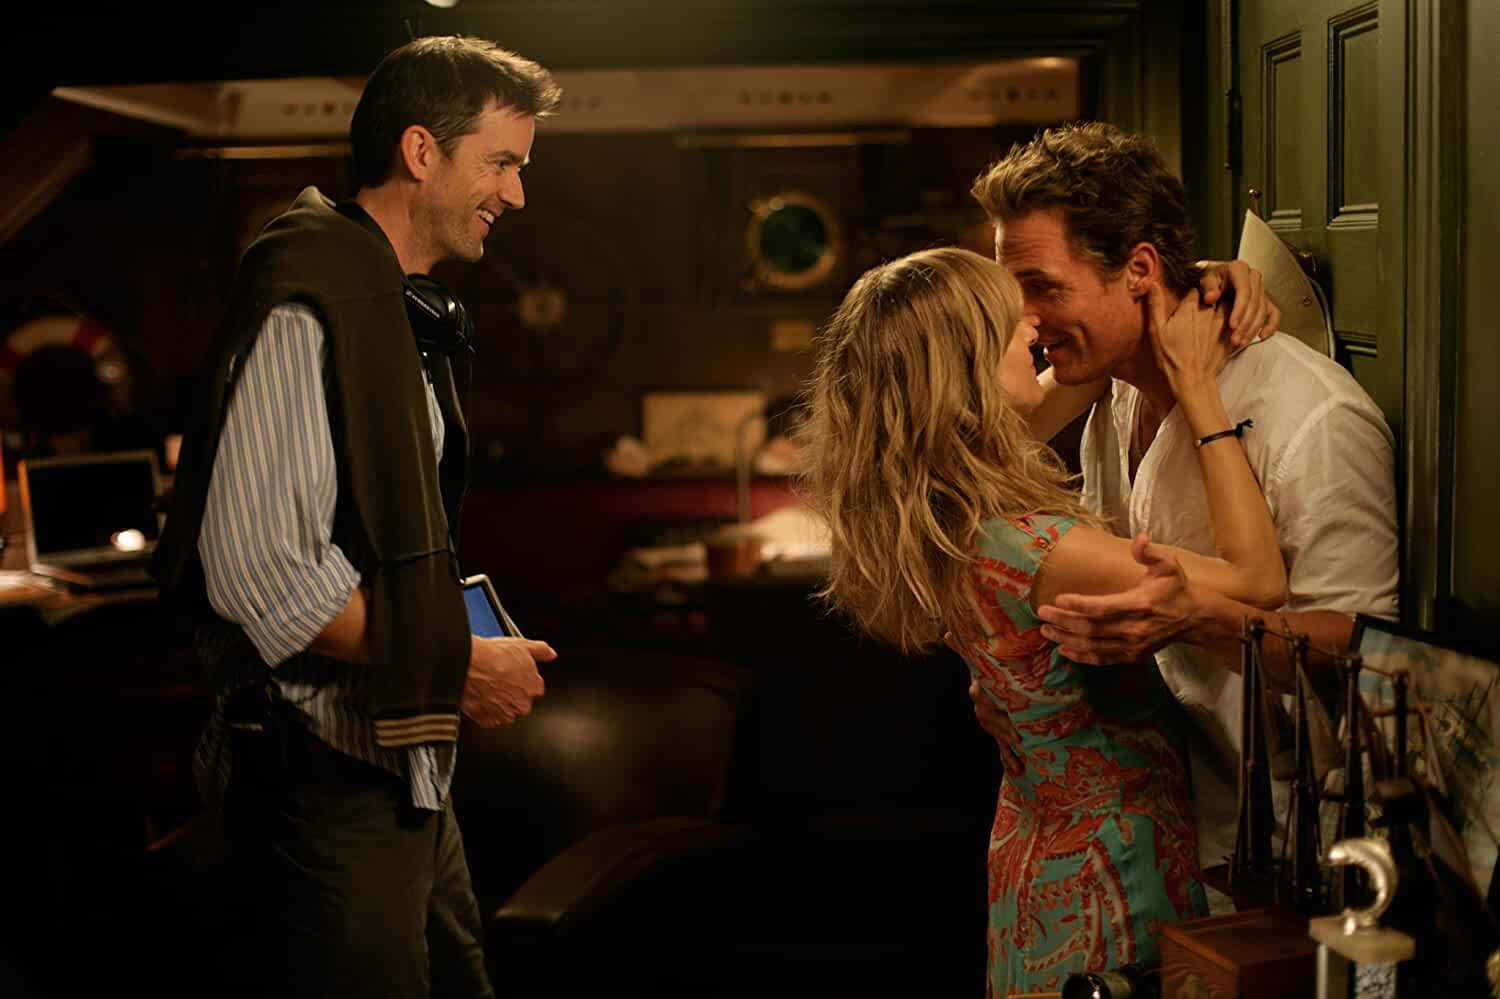 Matthew McConaughey, Sarah Jessica Parker, and Tom Dey in Failure to Launch (2006)